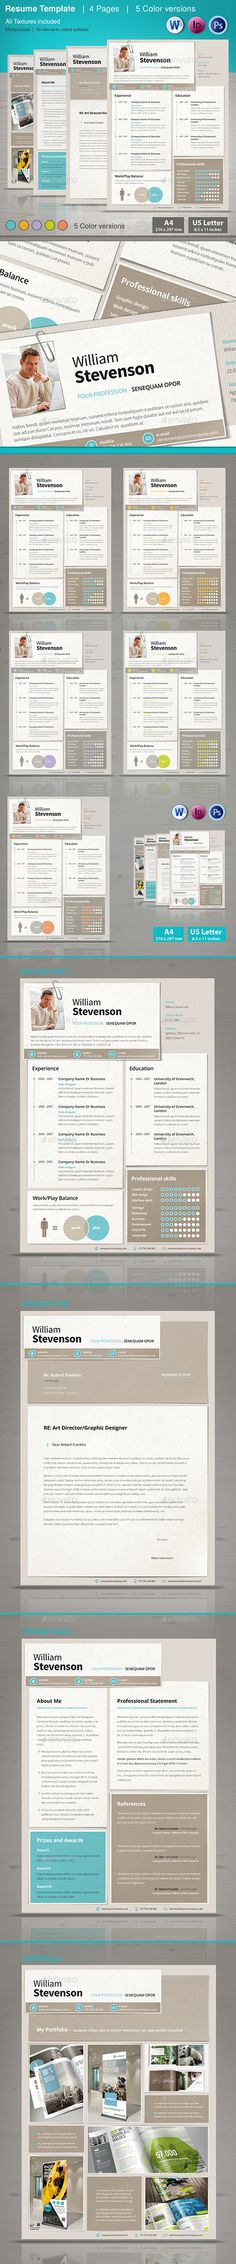 58 best go sumo cv templates